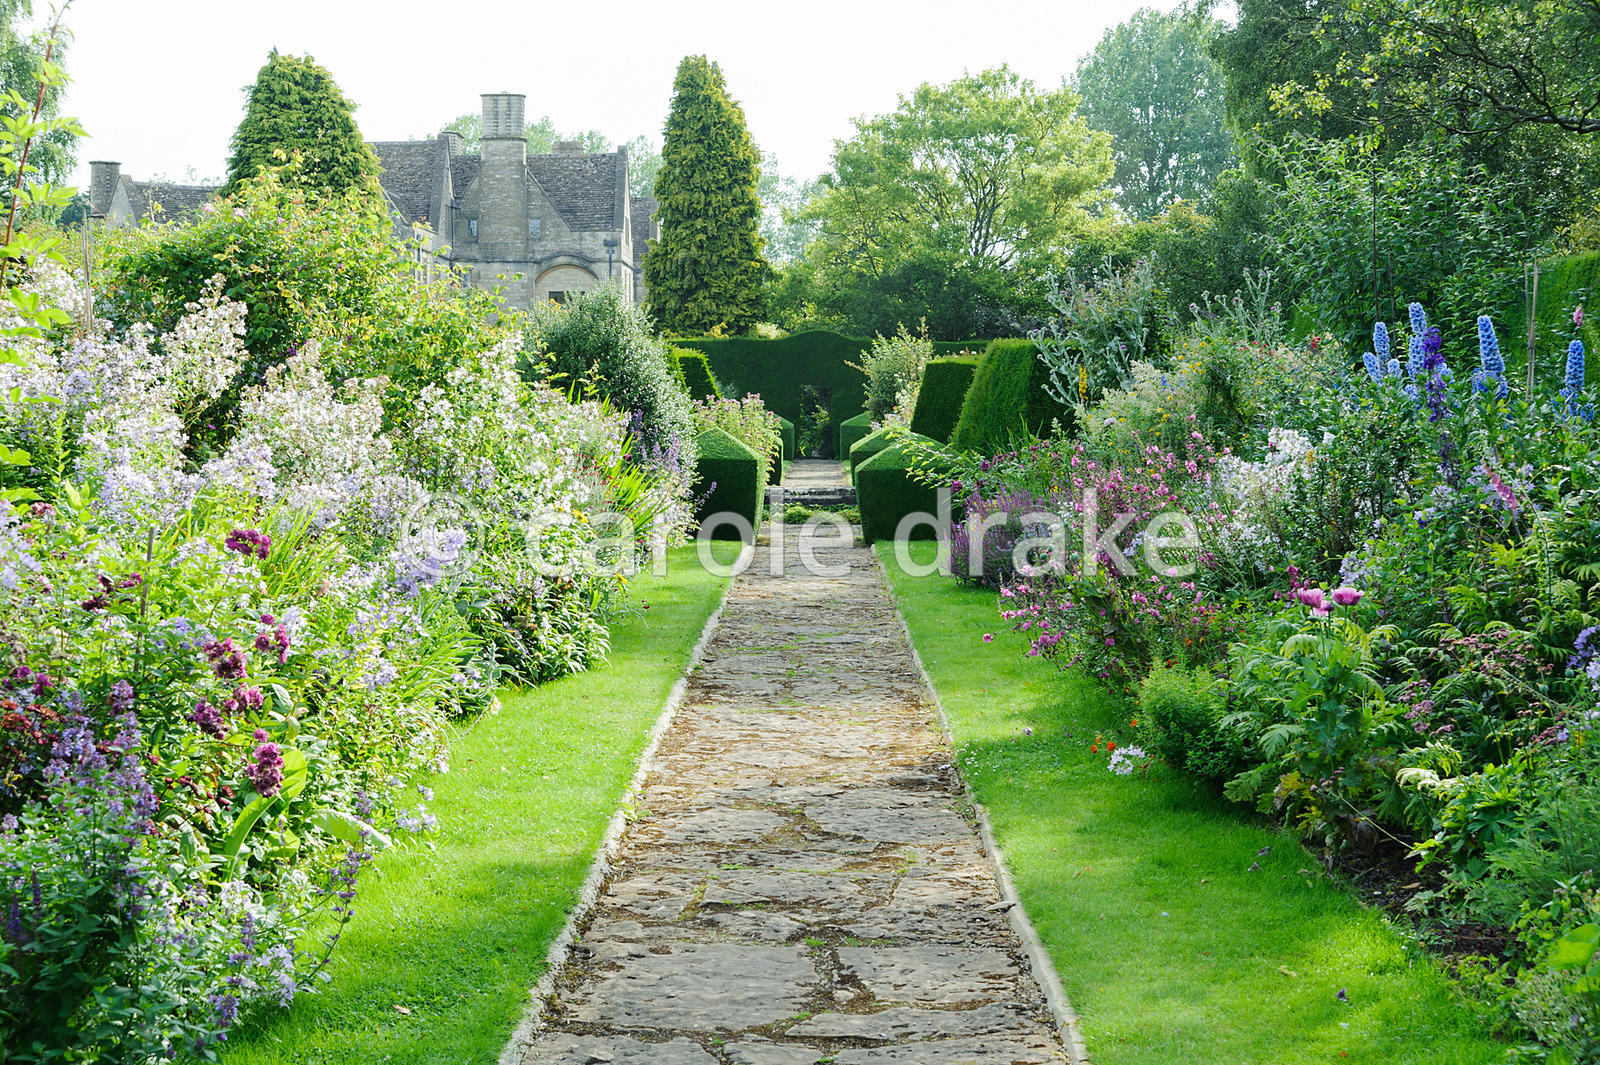 Double herbaceous borders framed with clipped box and tall yew hedges include delphiniums, phlox, campanulas and poppies. Rod...